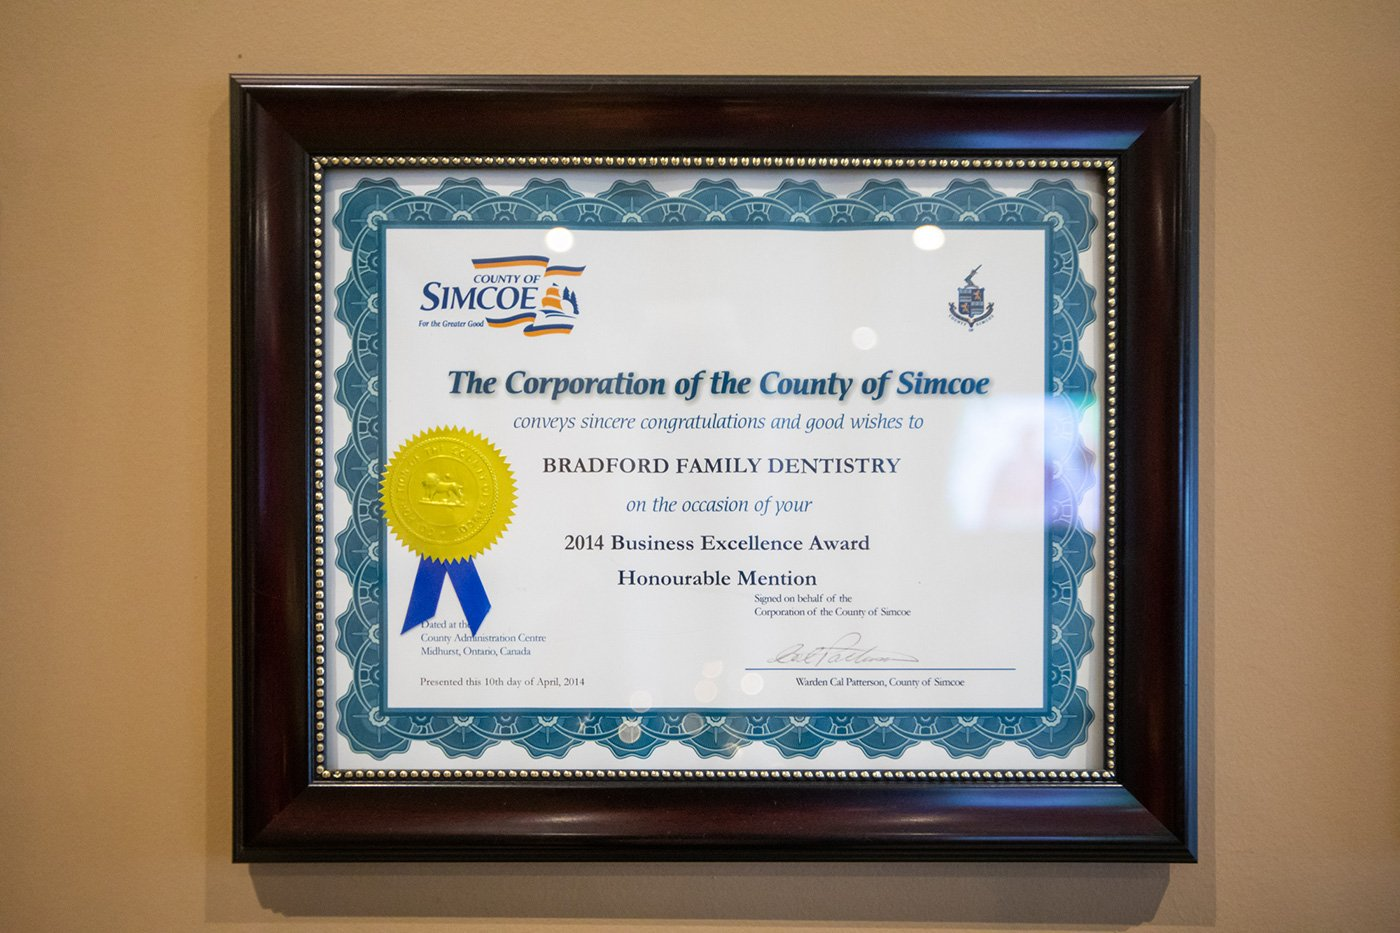 2014 Business Excellence Award - County of Simcoe